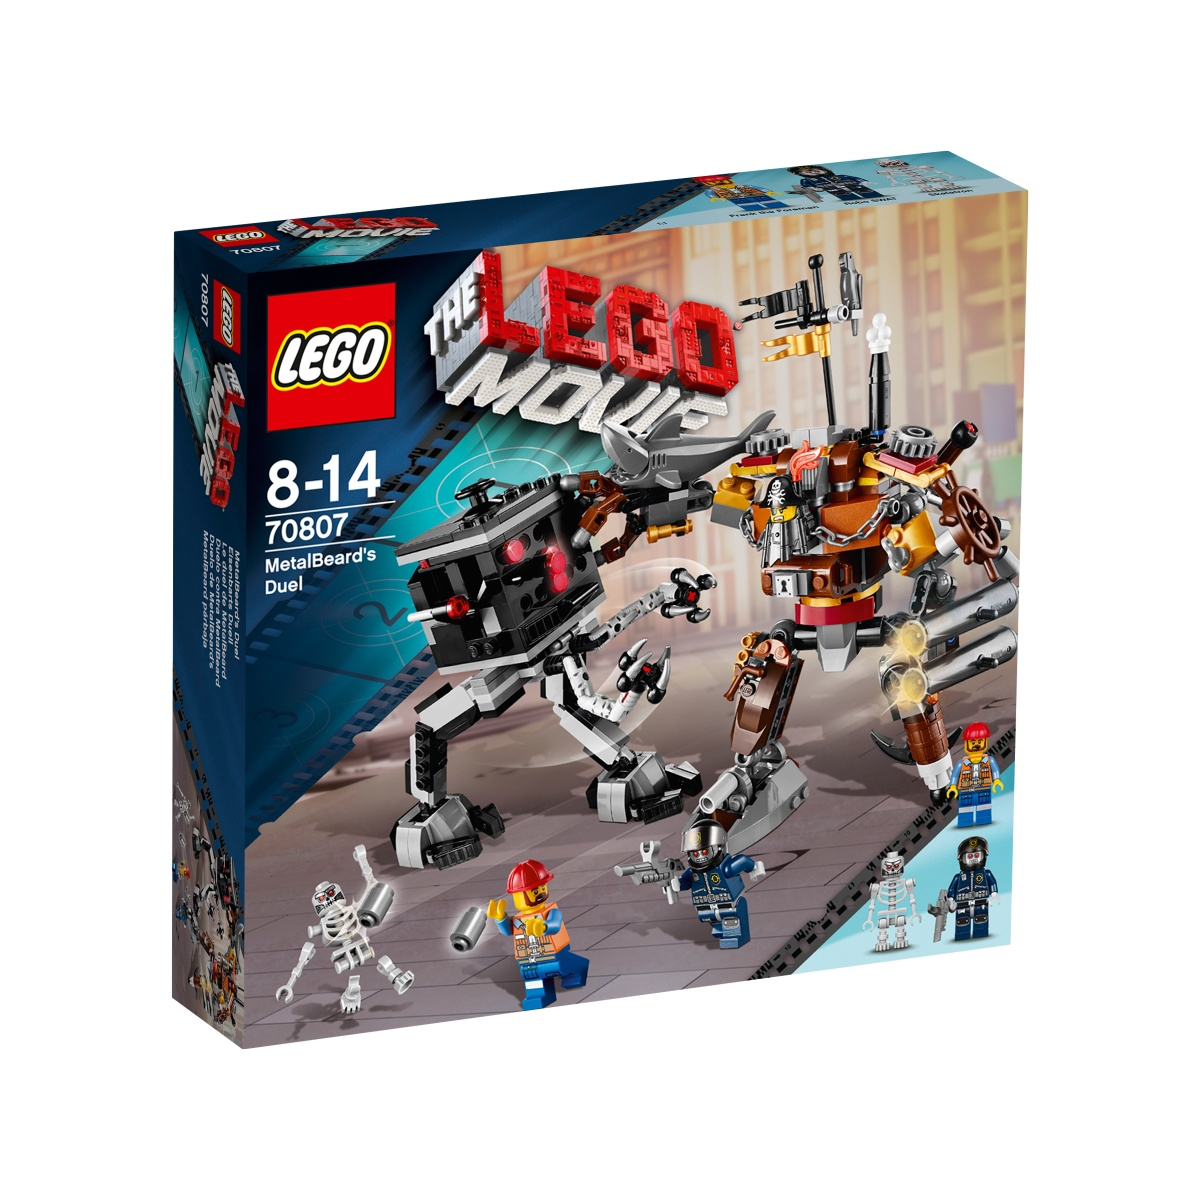 Do choi Lego 70807 - Tran chien Robot